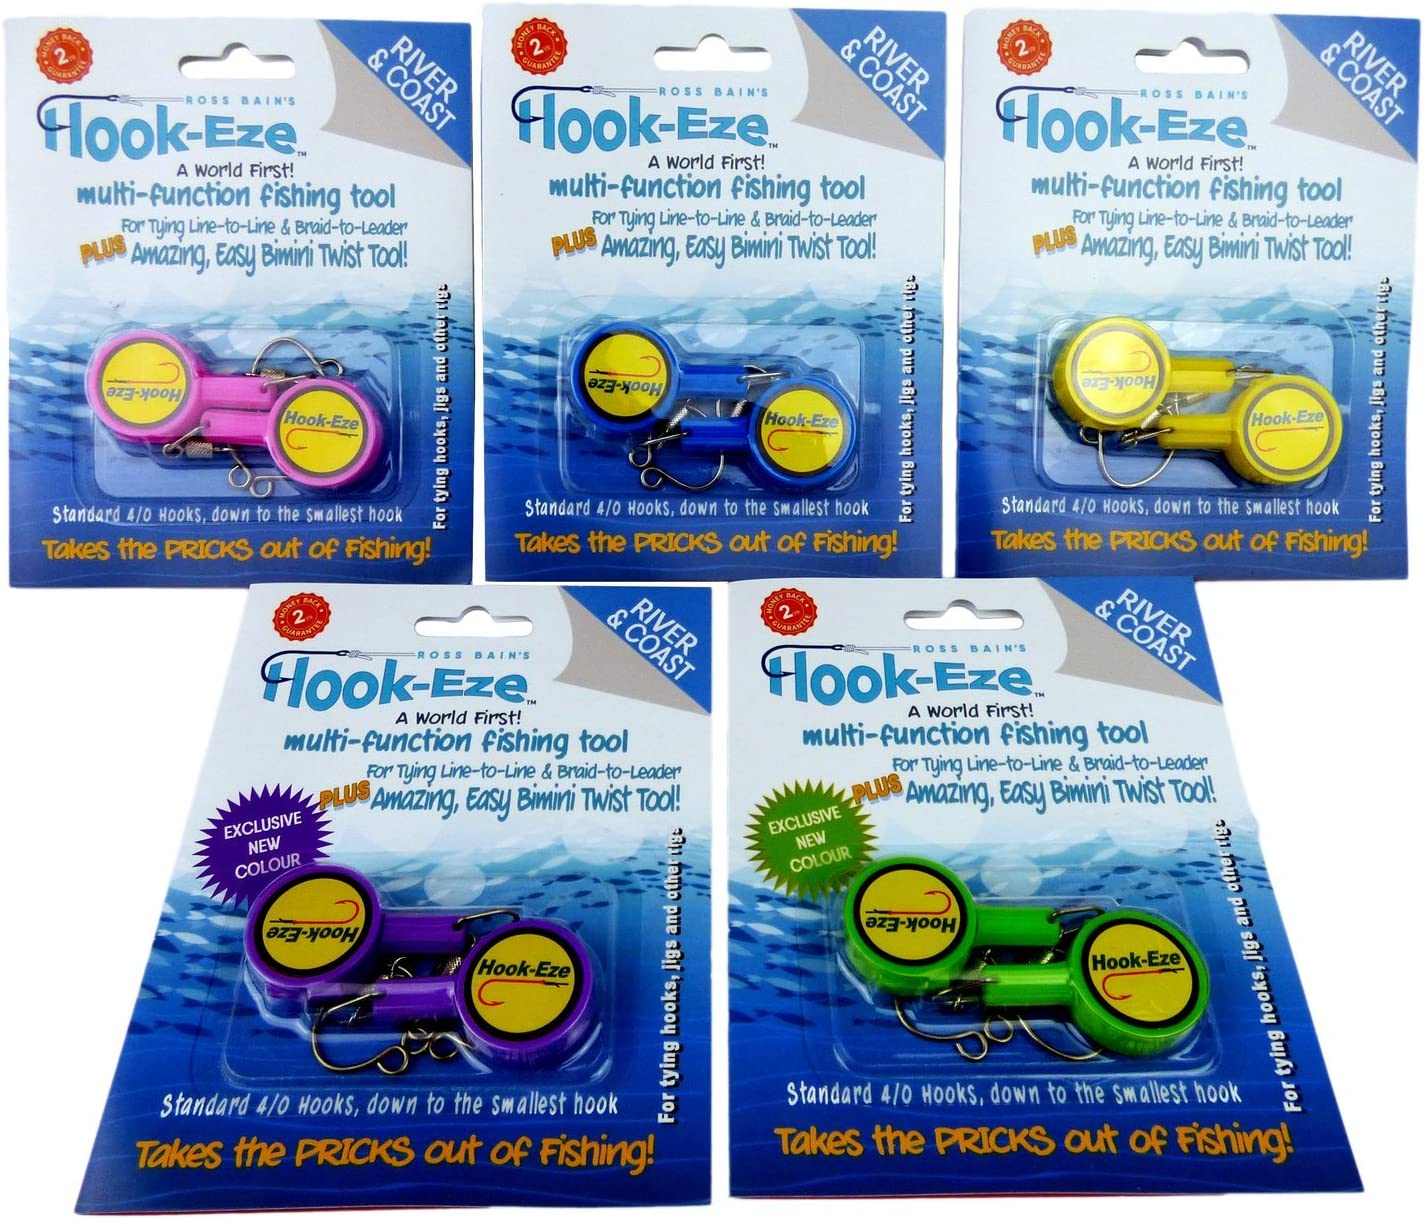 Hook-Eze Fishing Luxury goods Tool - 5 Twin Safety Packs Tying Devic Hook Max 84% OFF